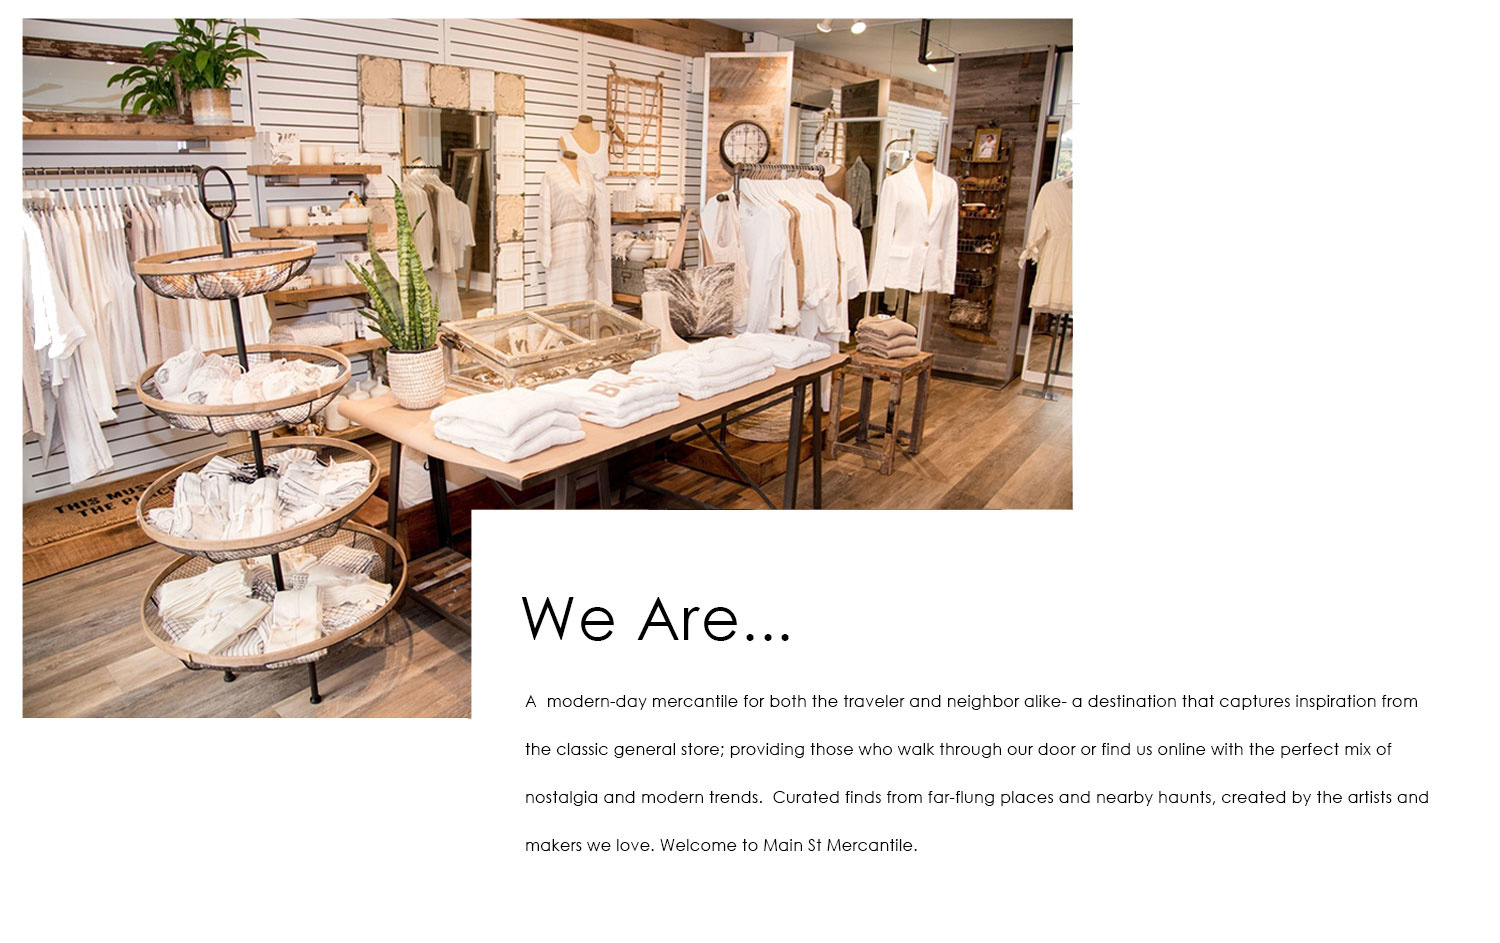 about main st mercantile